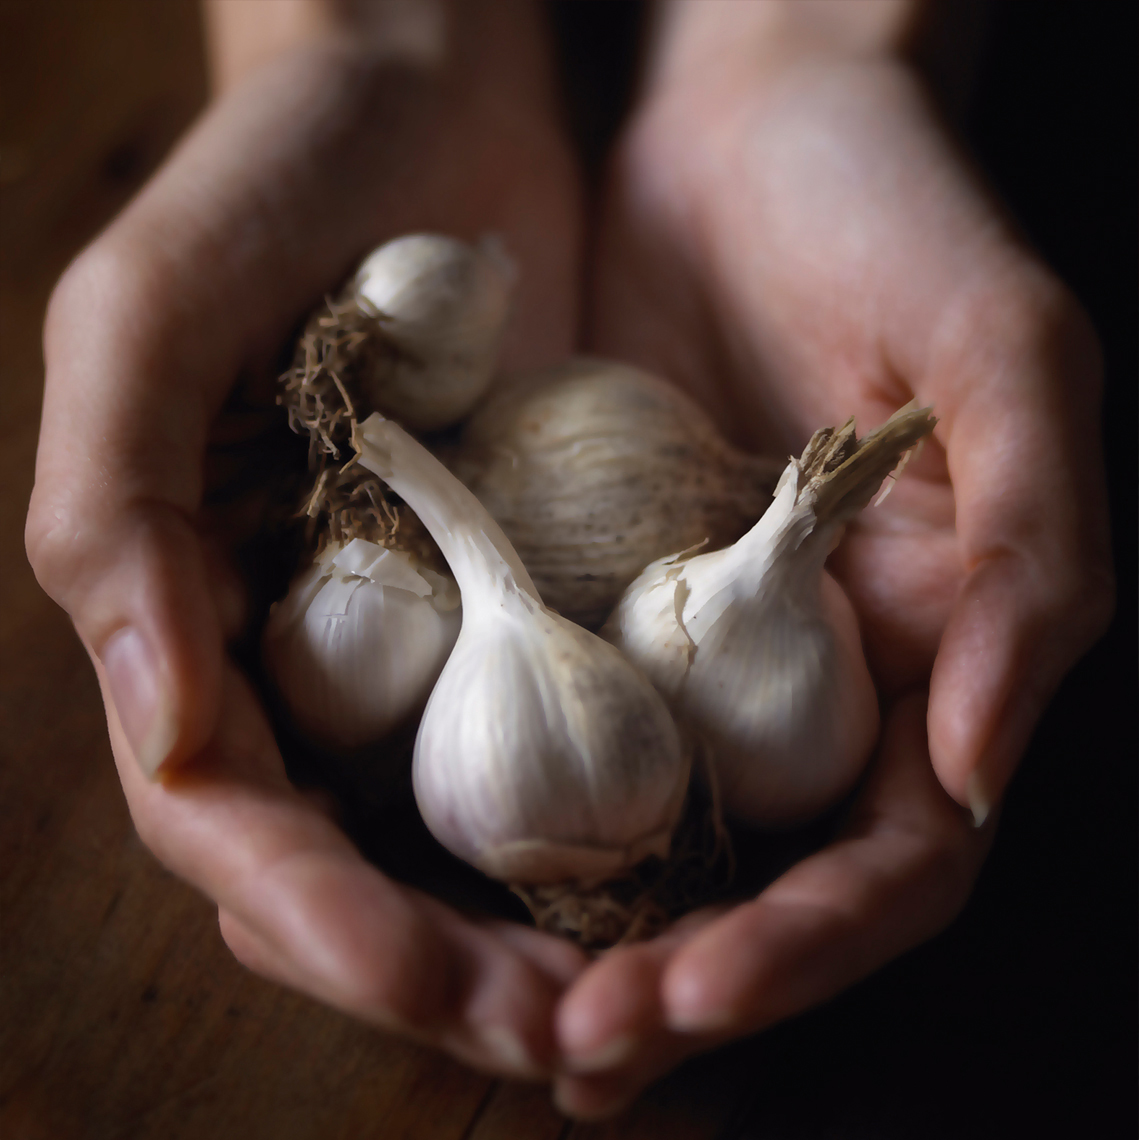 garlic in hands